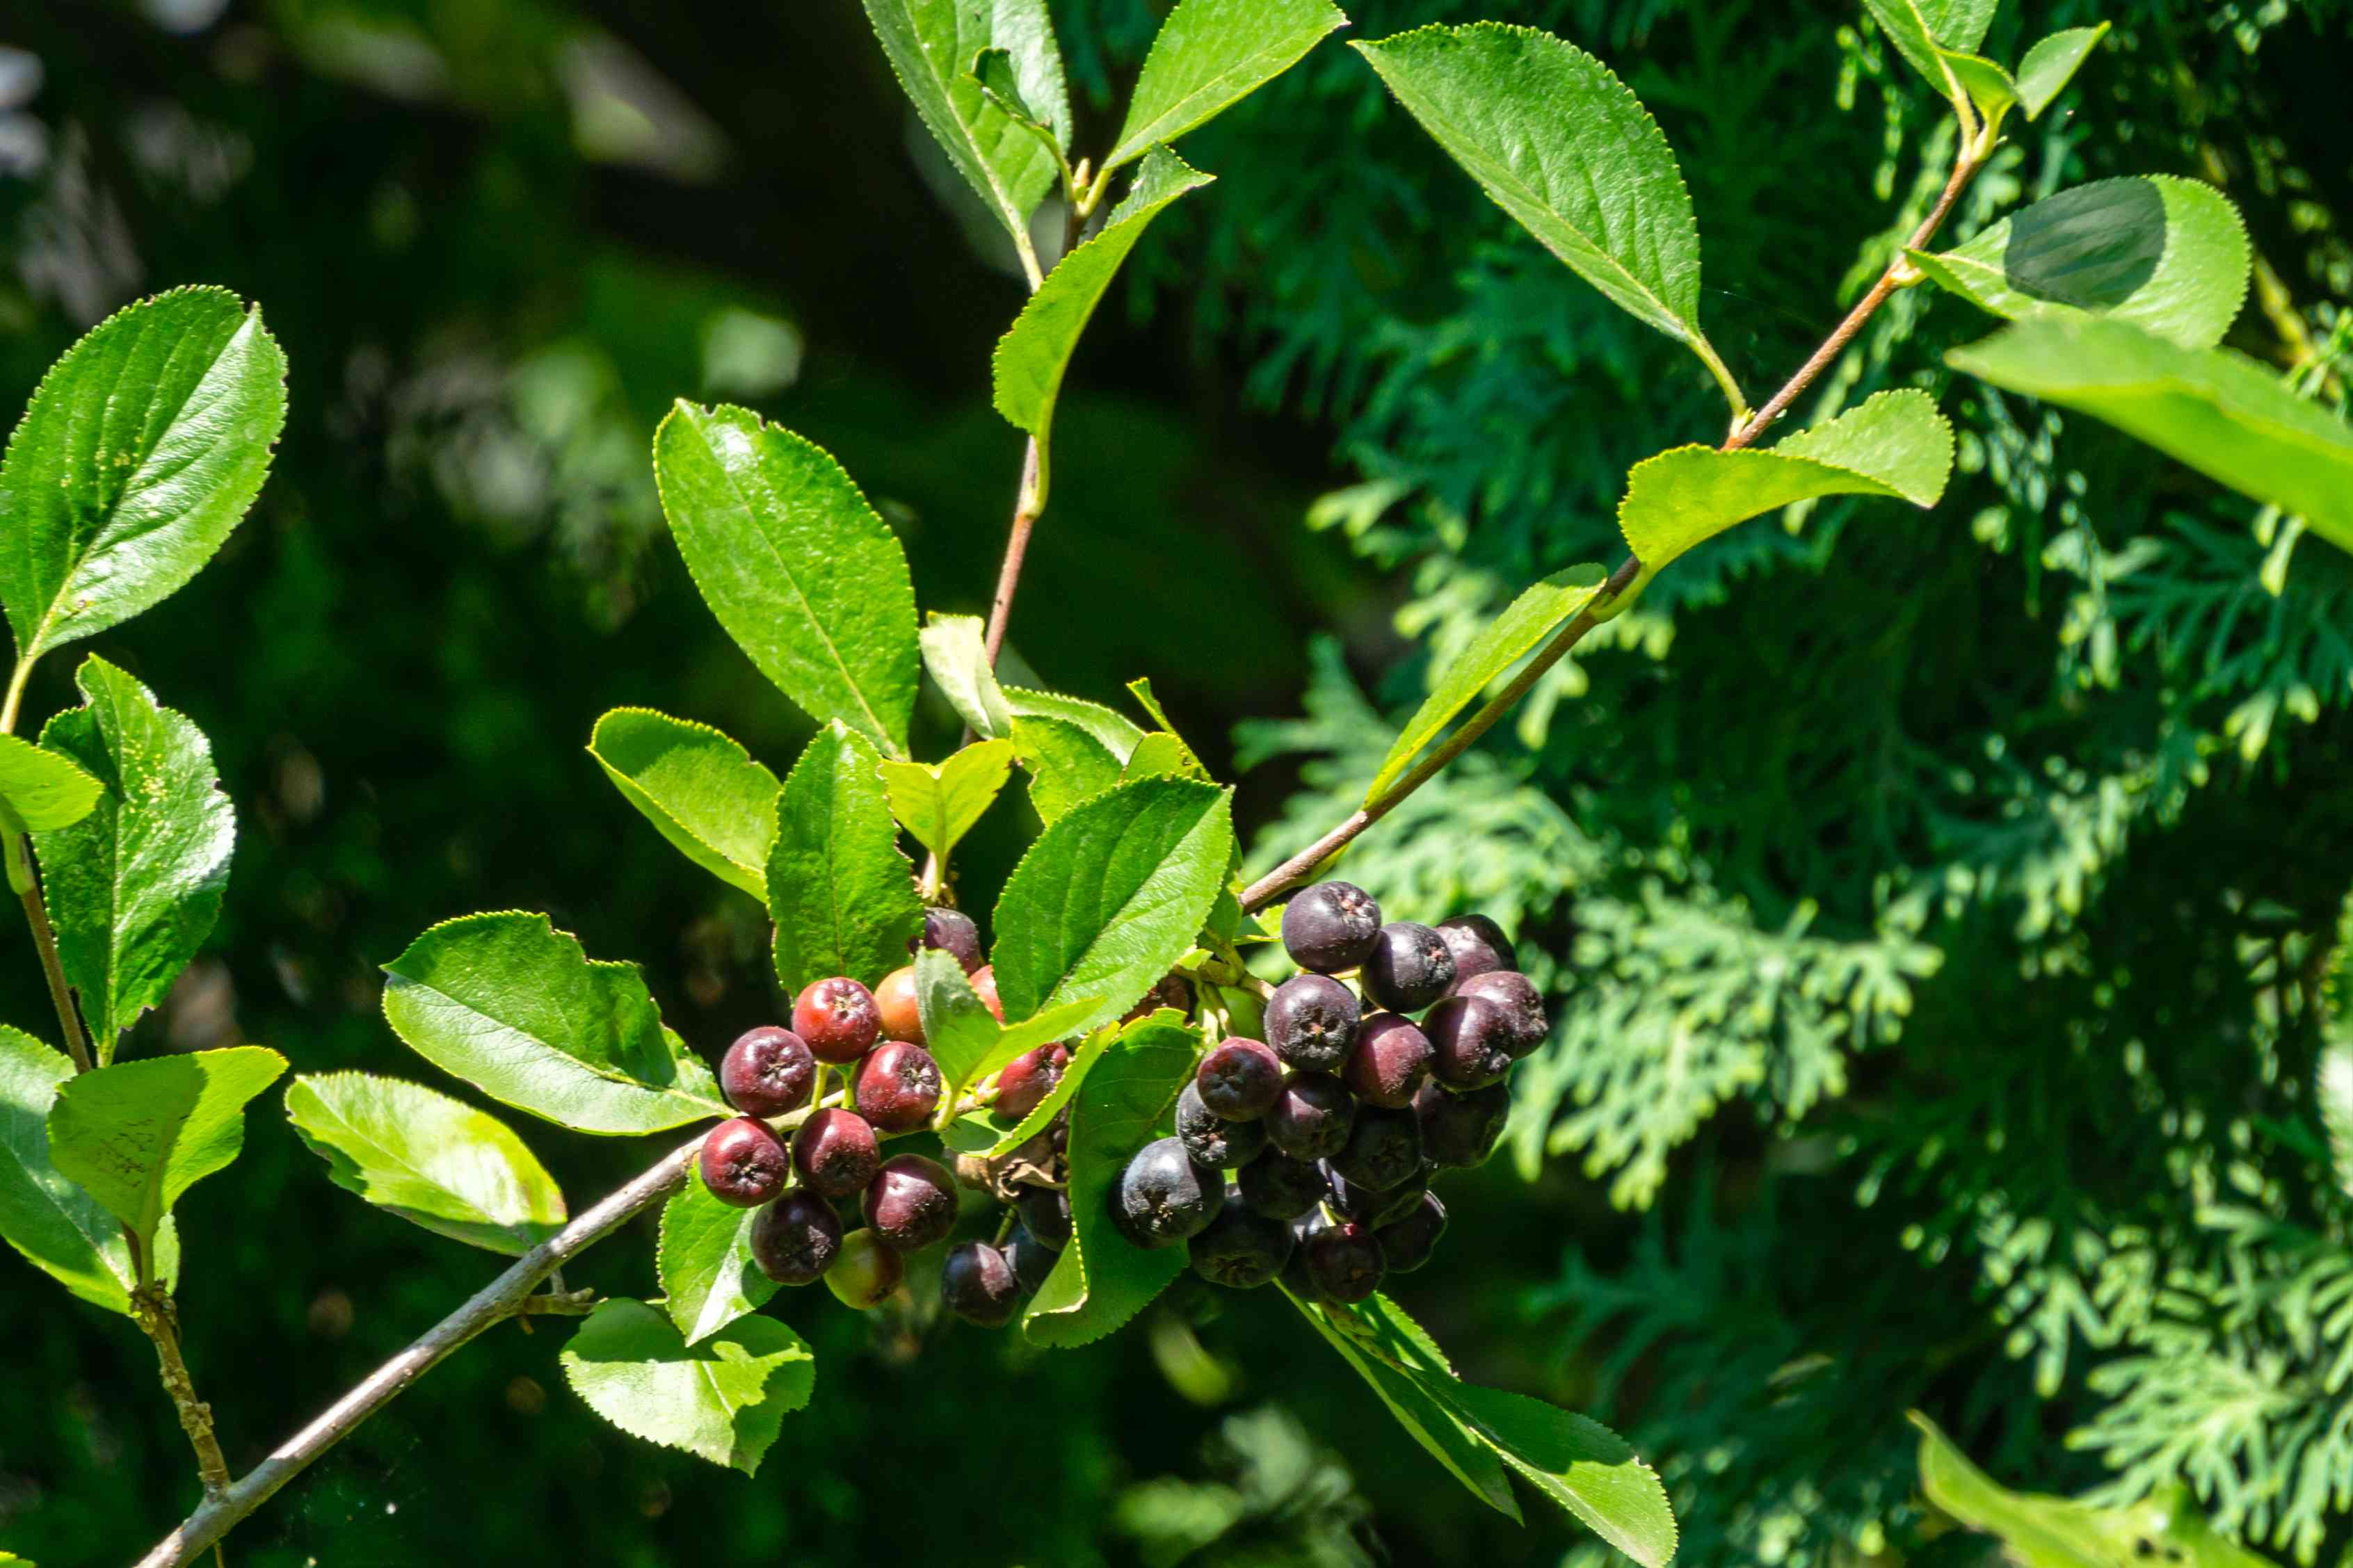 Canadian serviceberry plant with dark red and purple berries